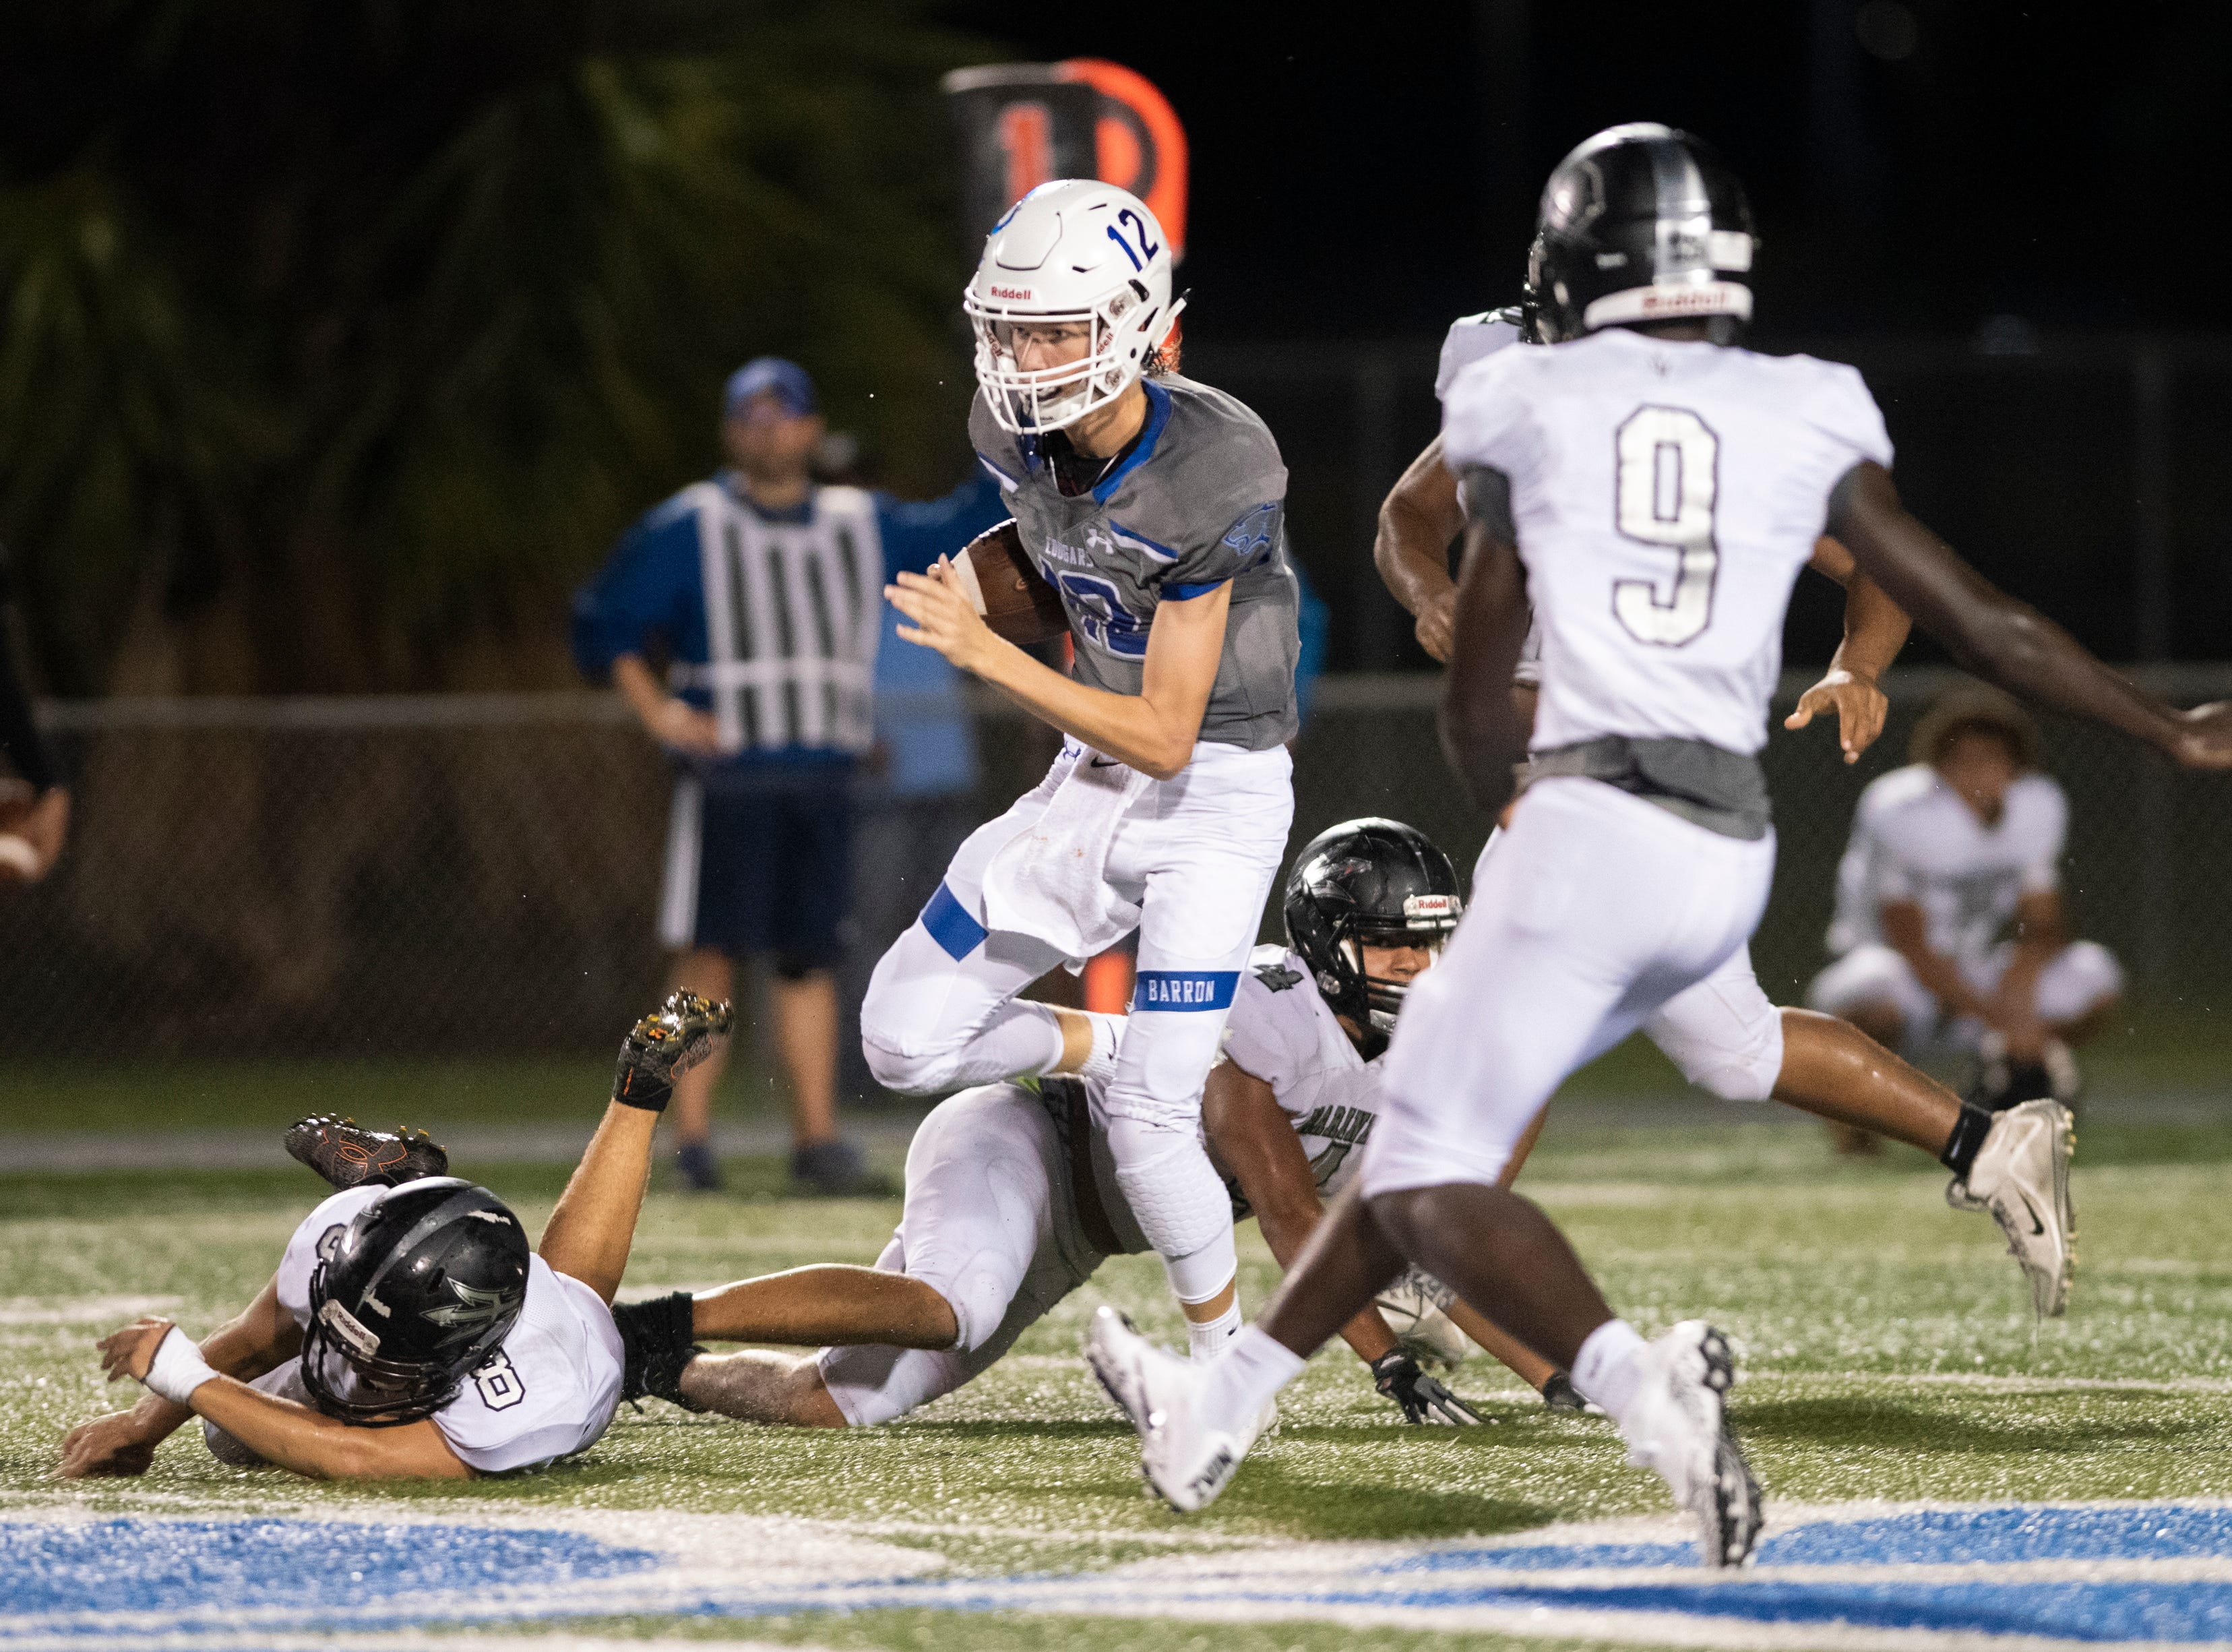 Barron Collier quarterback Jason Grimes runs through the Mariner defense during the game at Barron Collier High Friday night, September 21, 2018.